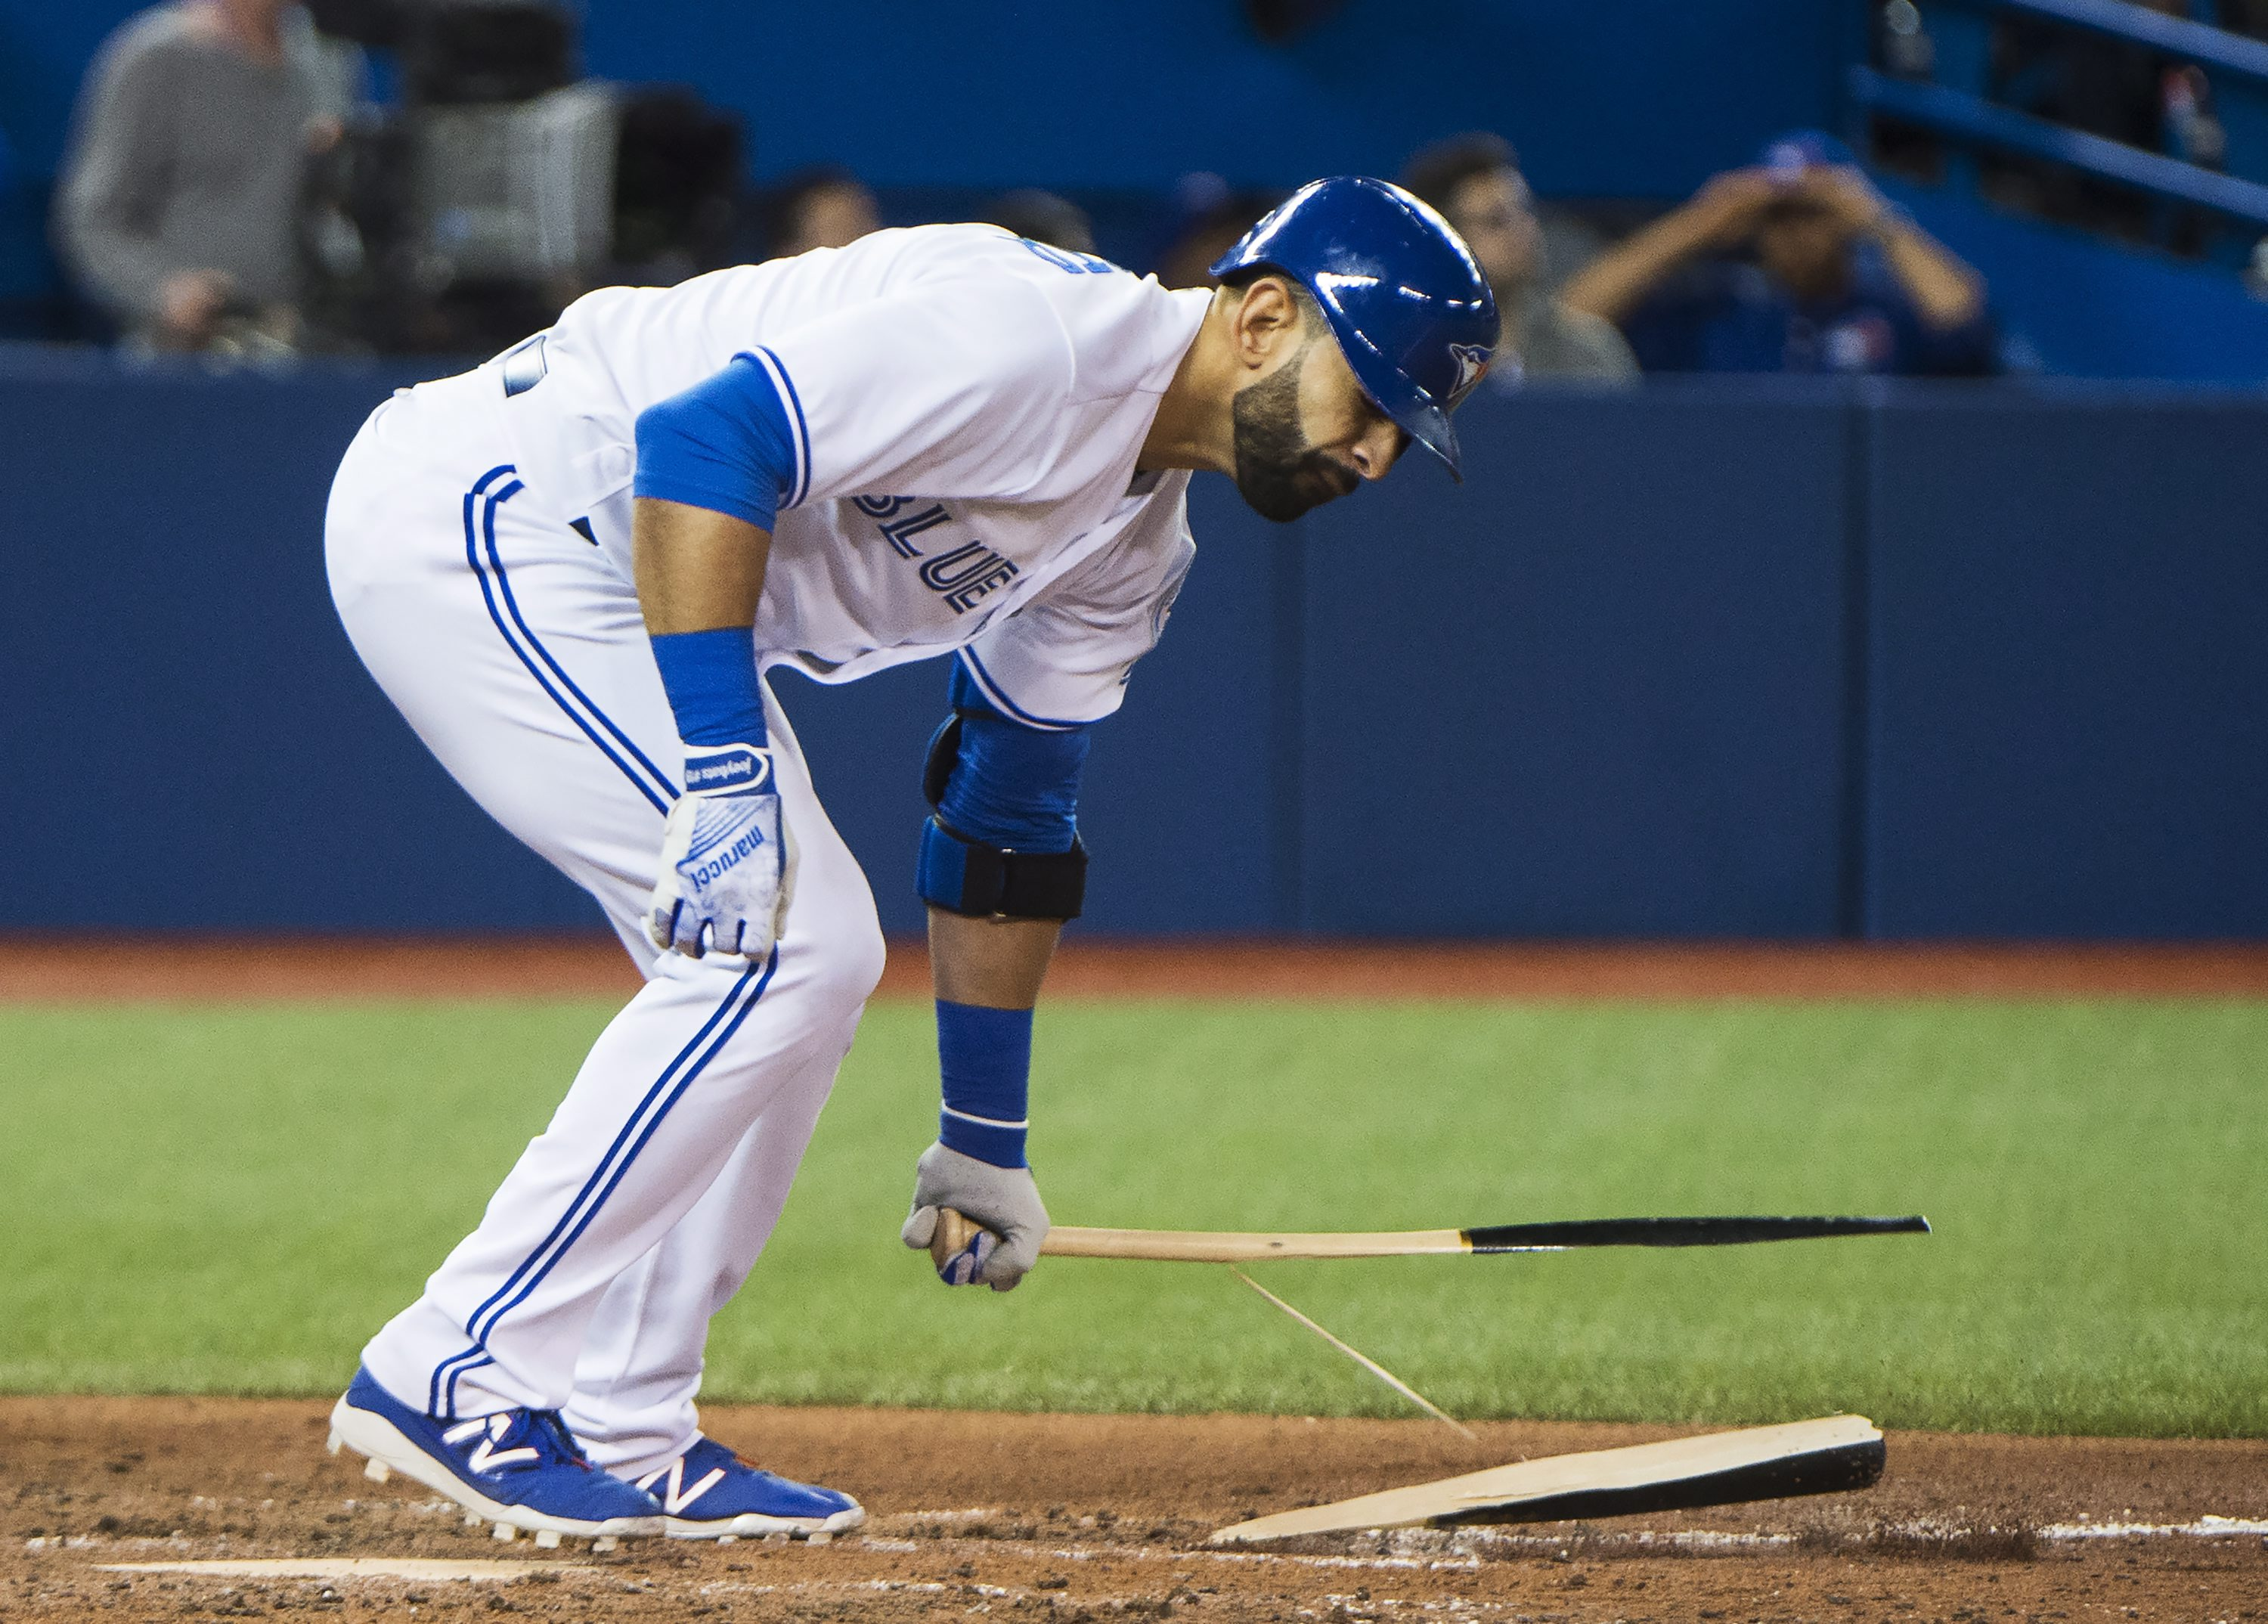 Toronto Blue Jays right fielder Jose Bautista (19) breaks his bat in frustration after hitting a pop fly out during the eighth inning of a baseball game against the Texas Rangers, Wednesday, May 4, 2016, 2016 in Toronto. (Nathan Denette/The Canadian Press